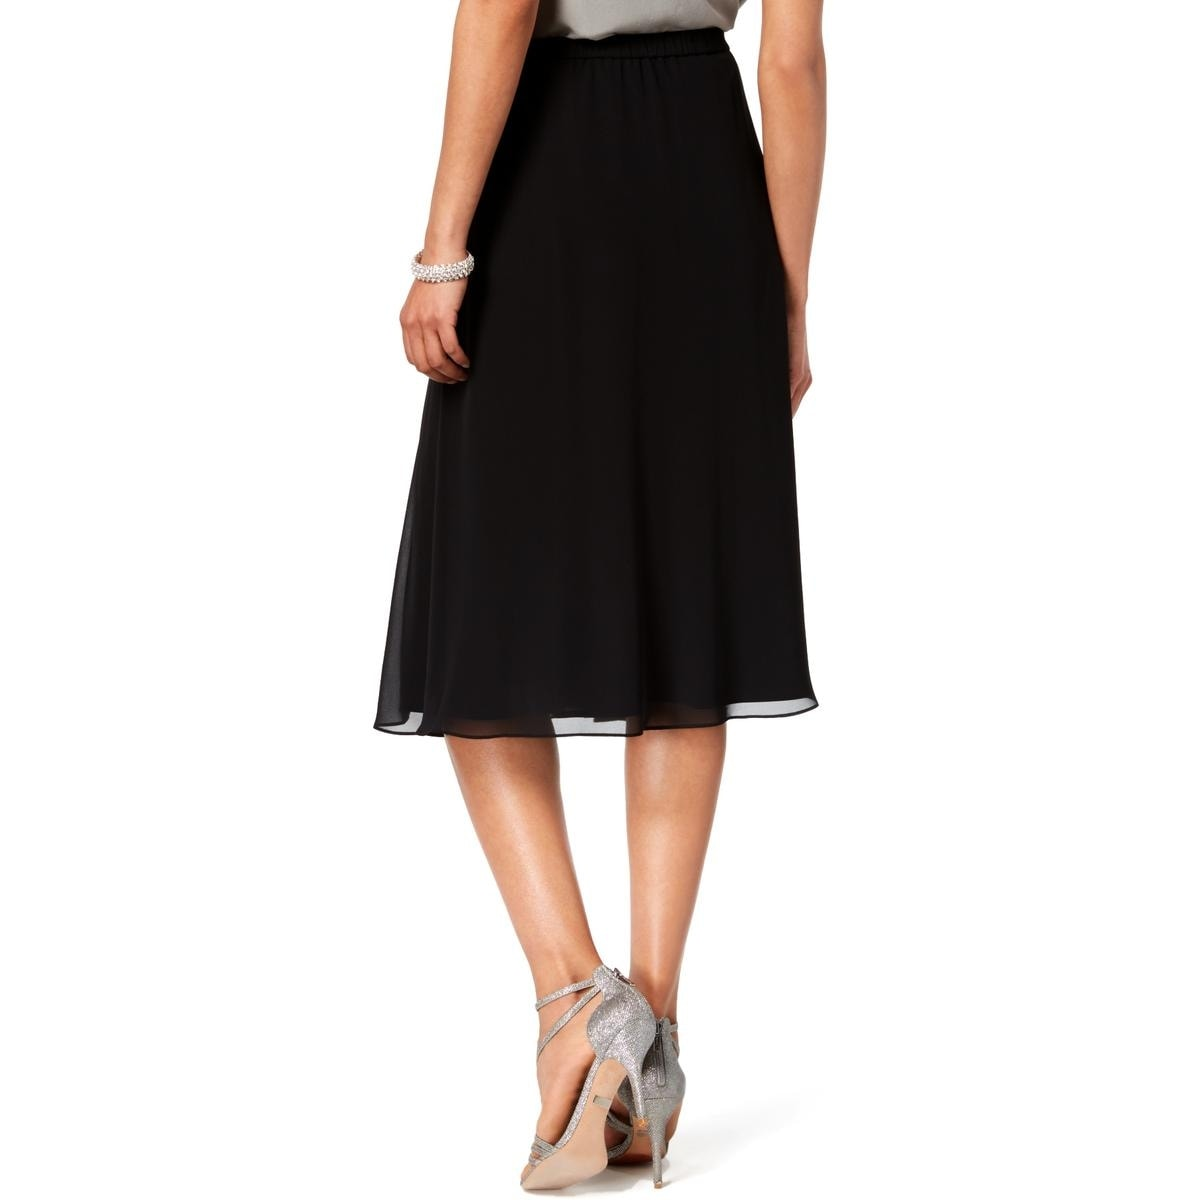 0c678c92cb Shop Alex Evenings Womens A-Line Skirt Chiffon Knee-Length - Free Shipping  On Orders Over $45 - Overstock - 28276346